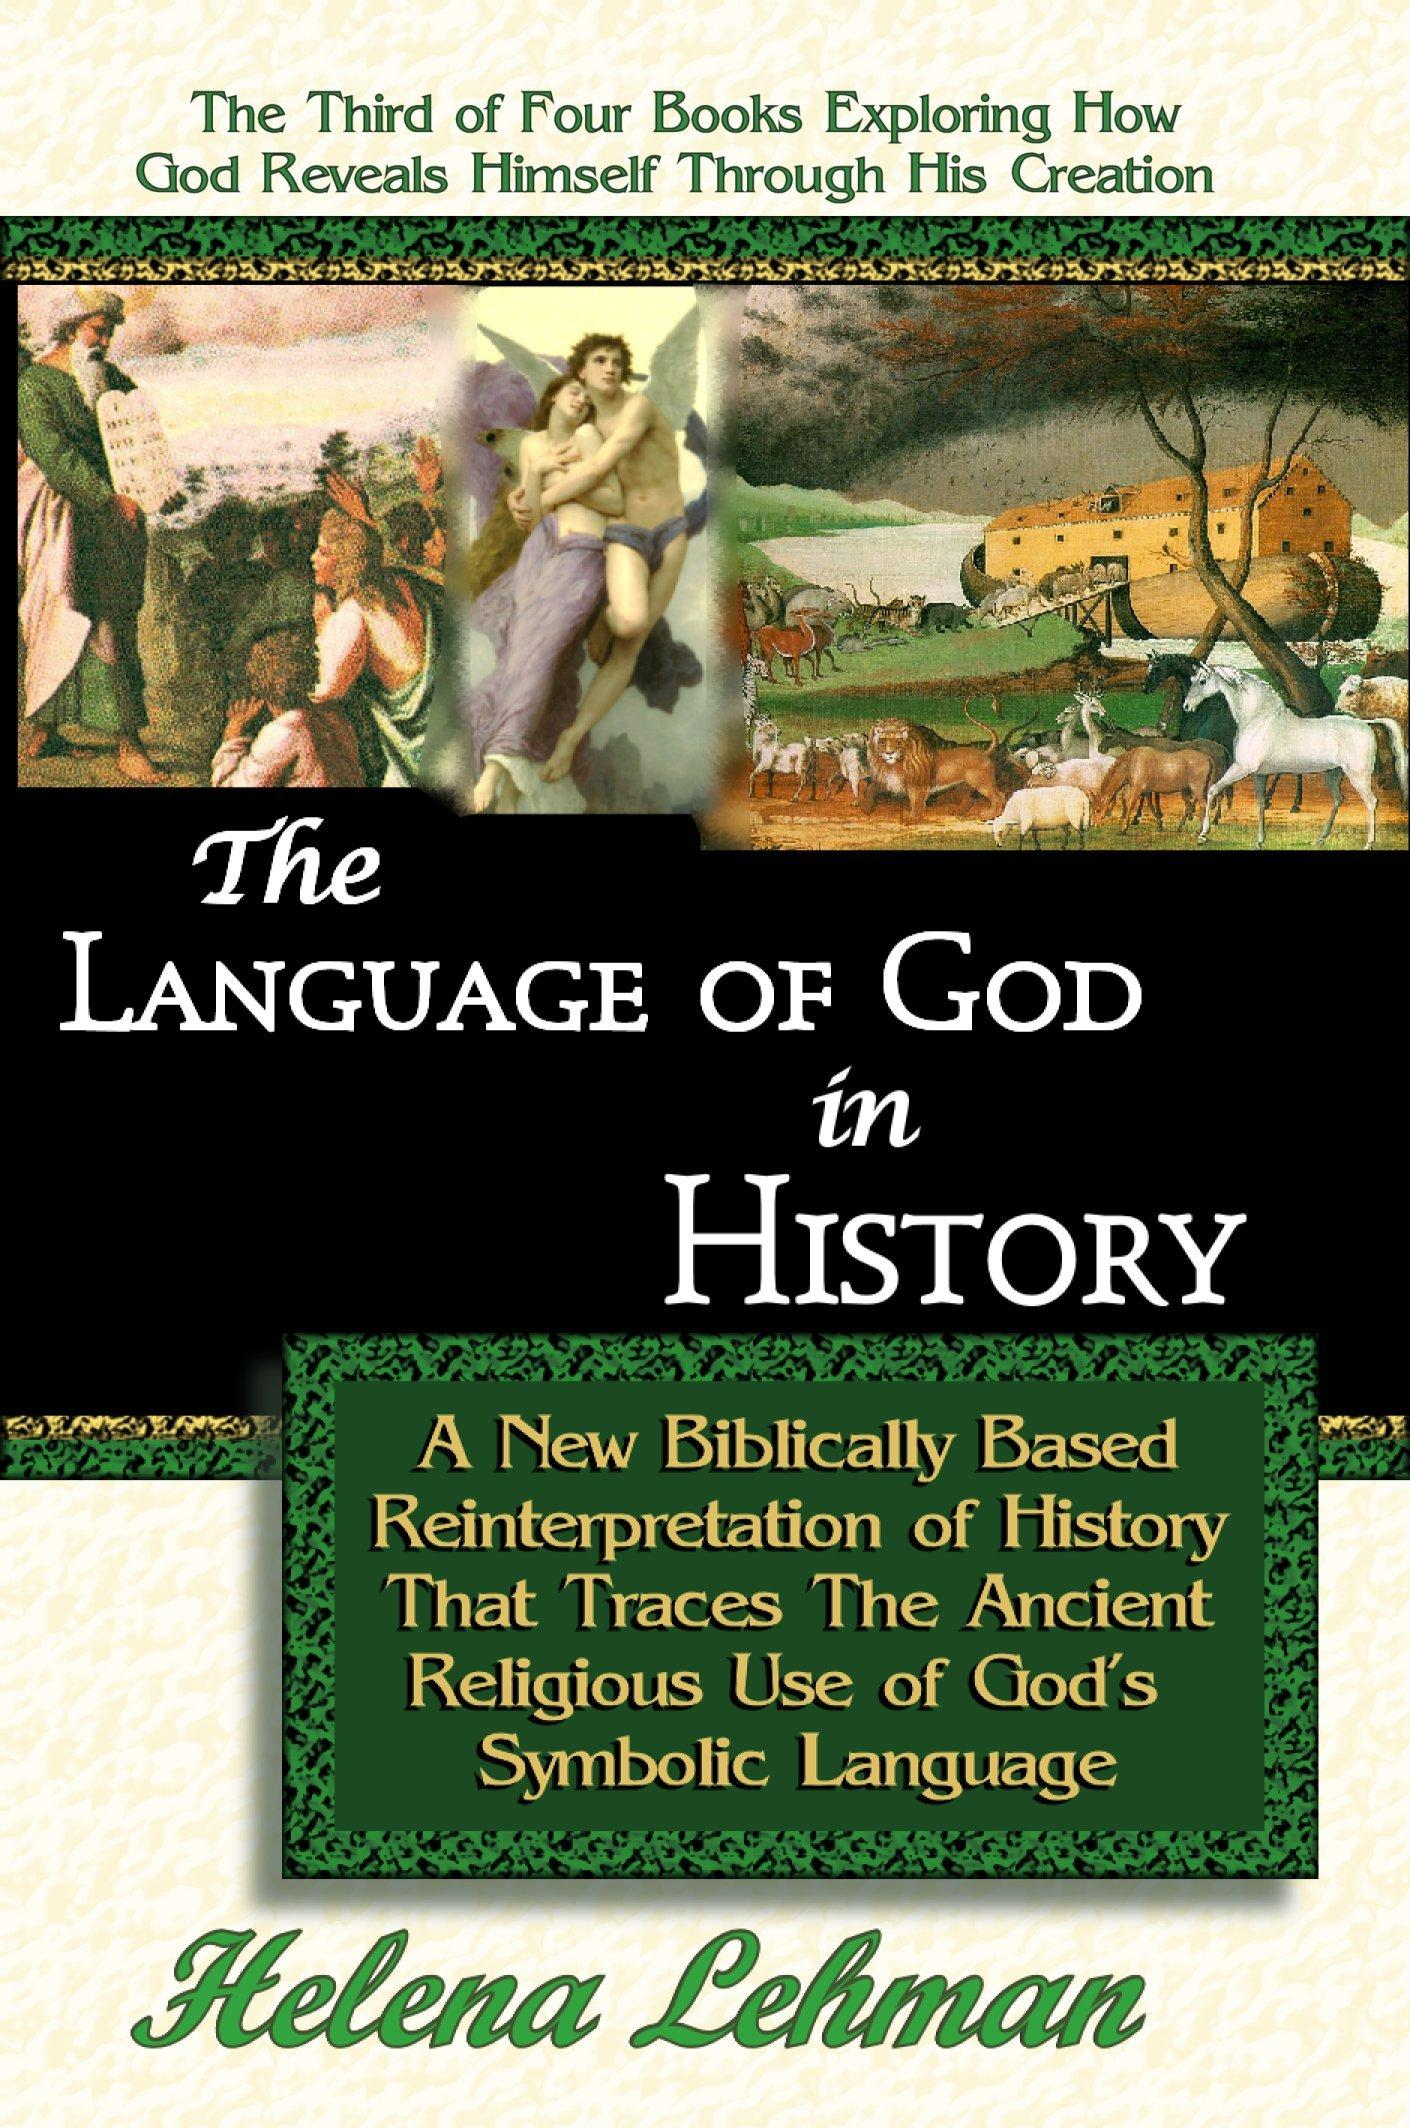 The Language of God in History, A New Biblically Based Reinterpretation of History That Traces The Ancient Religious Use of God's Symbolic Language By: Helena Lehman